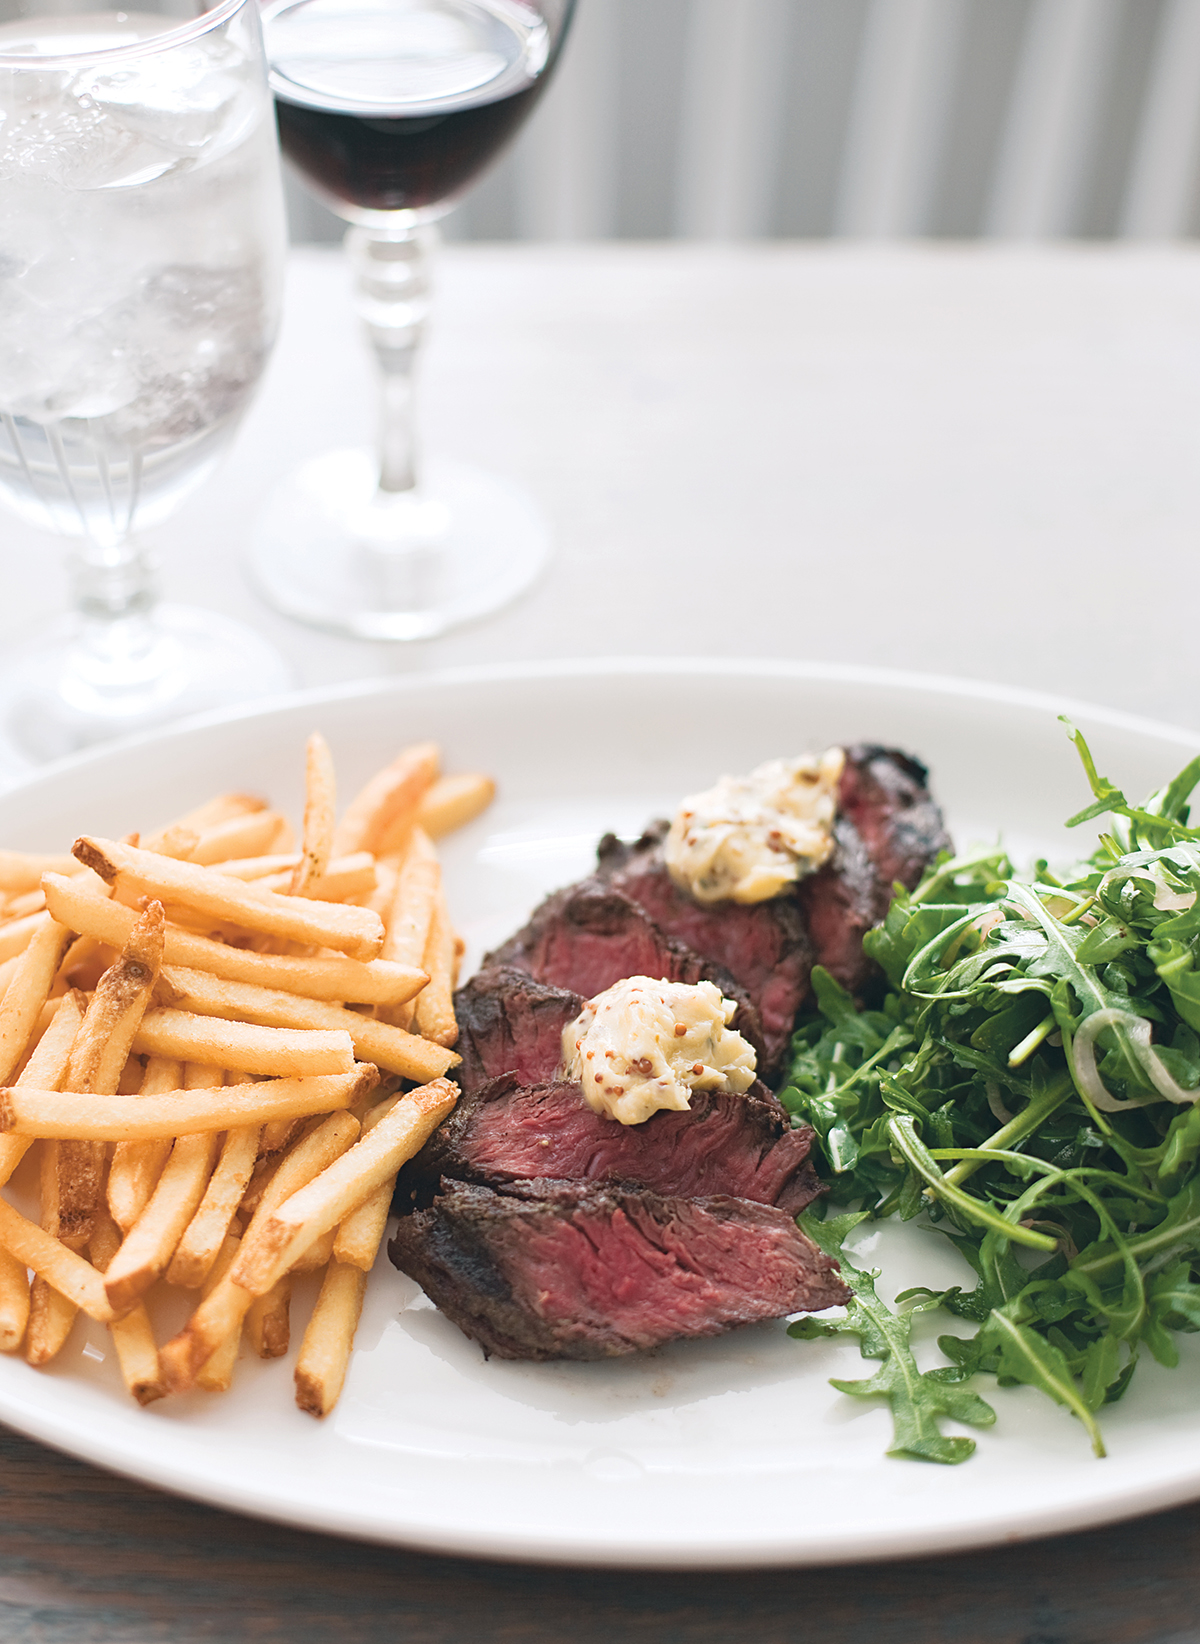 steak frites at woodward in the ames hotel. Photograph by Keller + Keller.